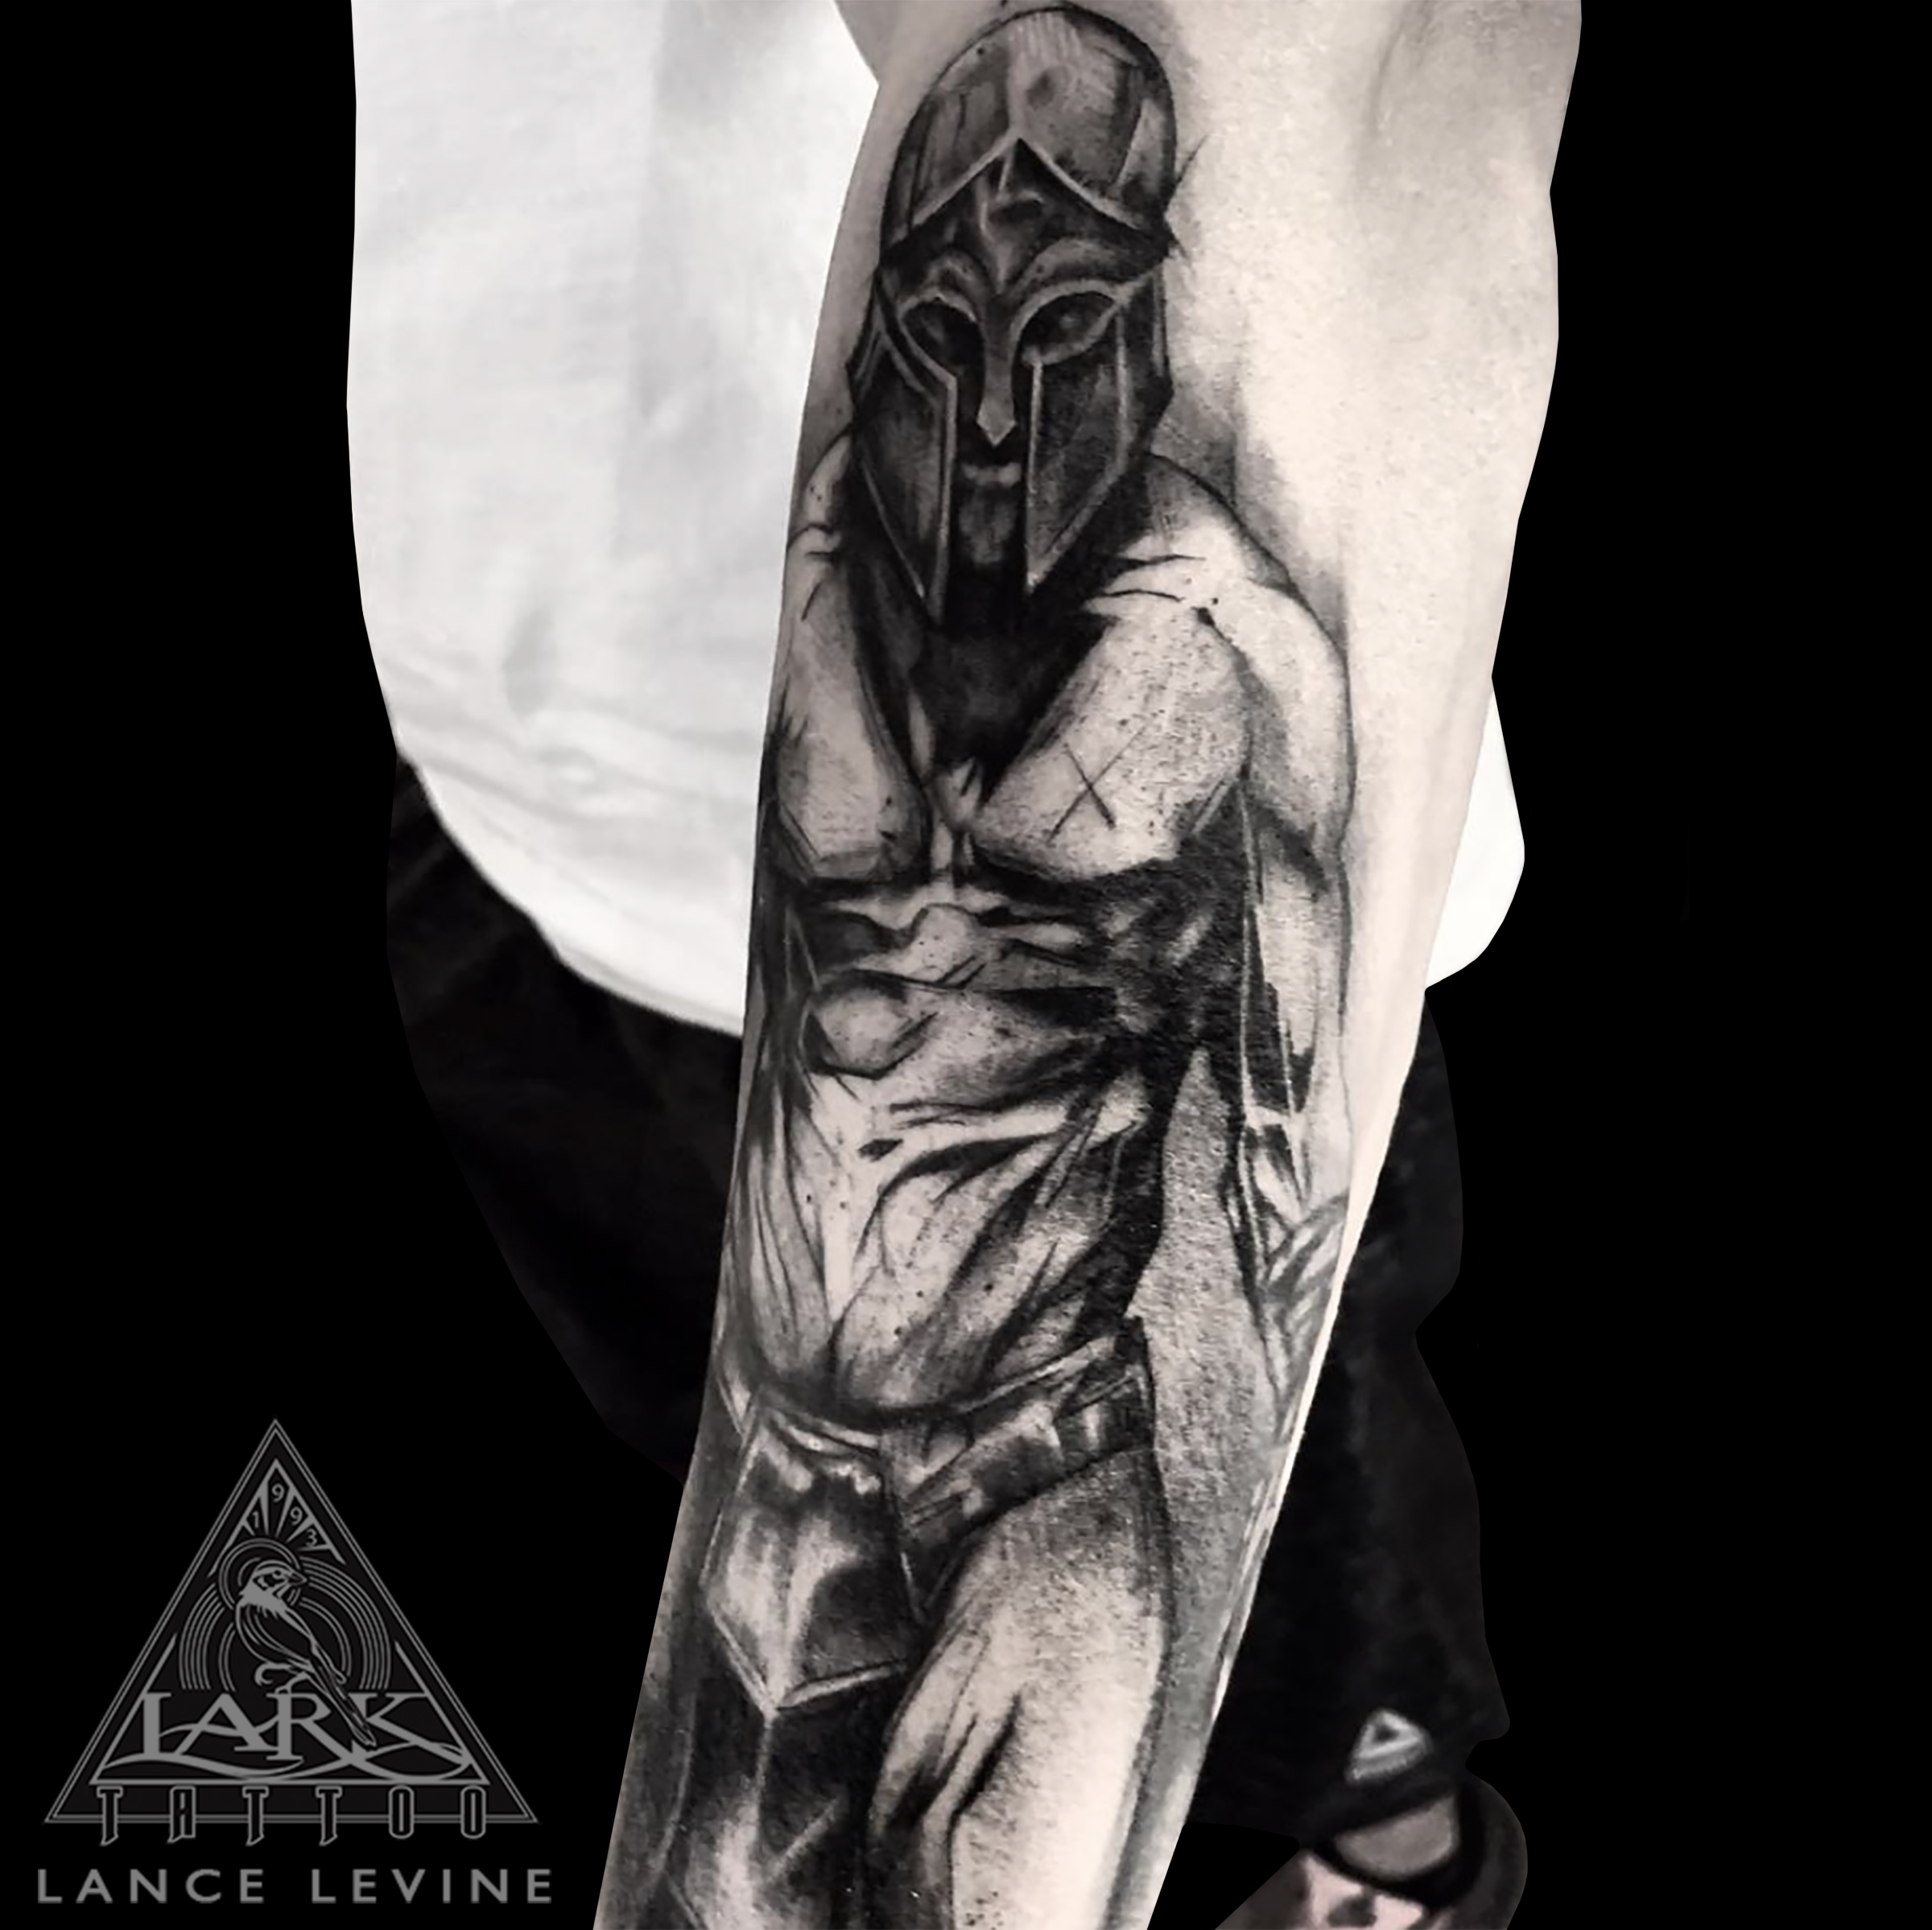 LarkTattoo, Tattoo, Tattoos, TonightWeDineInHell, BNG, BNGTattoo, BlackAndGrey, BlackAndGreyTattoo, BlackAndGray, BlackAndGrayTattoo, BlackWork, BlackWorkTattoo, BlackWorkers, Spartan, SpartanTattoo, GreekWarrior, GreekWarriorTattoo, GreekTattoo, 300, 300Movie, 300MovieTattoo, 300Tattoo, BNGInkSocierty, TattooArtist, Tattoist, Tattooer, LongIslandTattooArtist, LongIslandTattooer, LongIslandTattoo, TattooOfTheDay, Tat, Tats, Tatts, Tatted, Inked, Ink, TattooInk, AmazingInk, AmazingTattoo, BodyArt, LarkTattooWestbury, Westbury, LongIsland, NY, NewYork, USA, Art, Tattedup, InkedUp, LarkTattoos